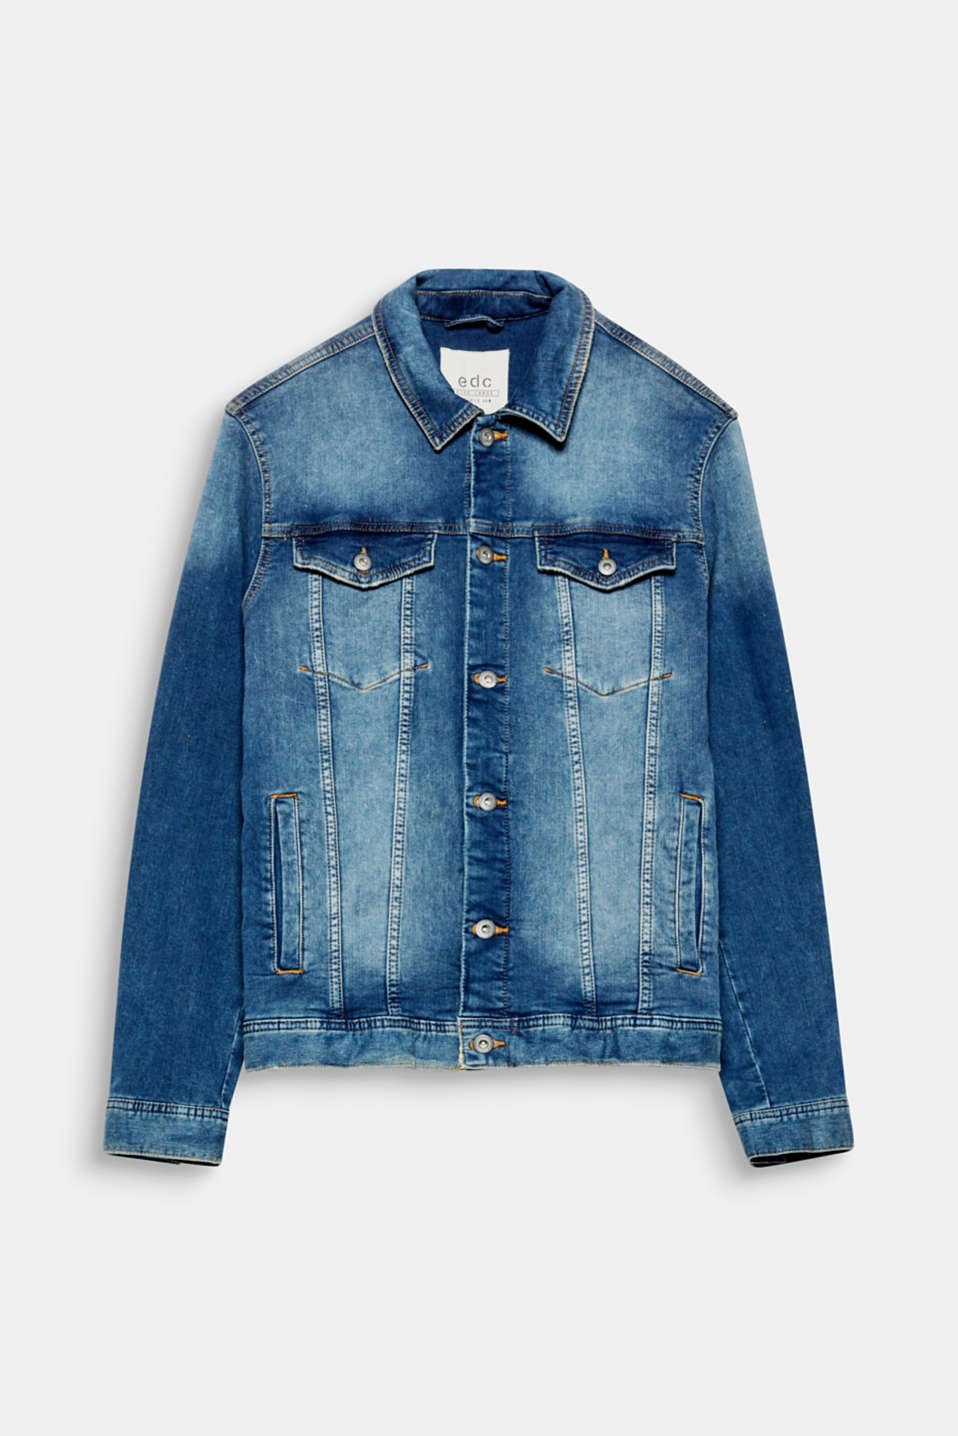 We love denim! The distinctive stone-washed effect and vintage effects on the edges give this denim jacket its urban look.